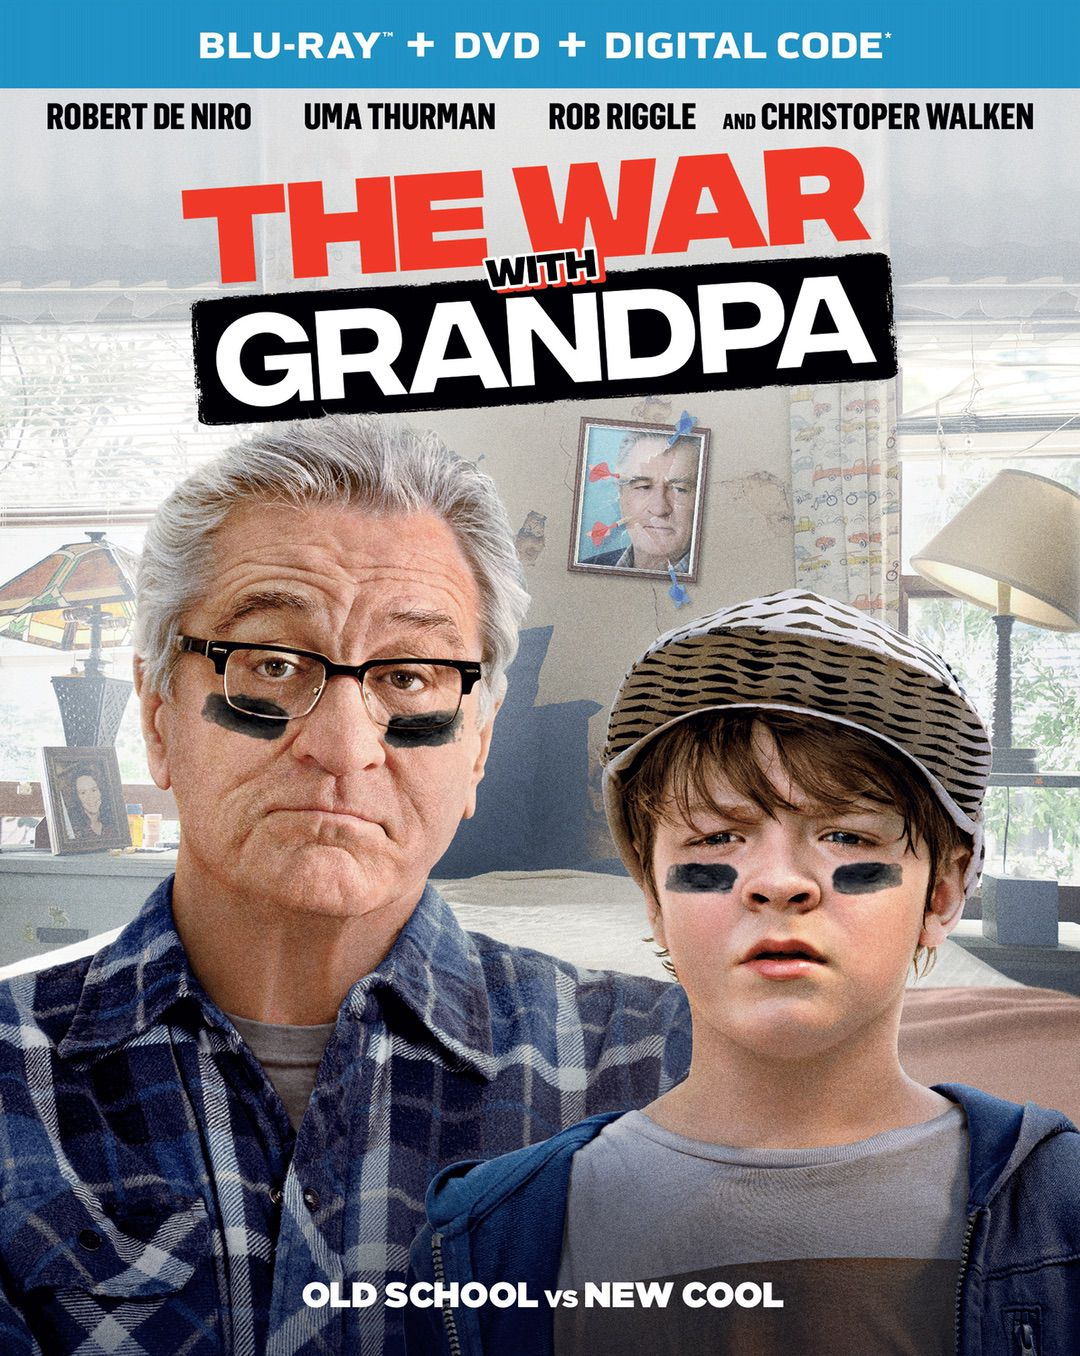 The War with Grandpa Movie